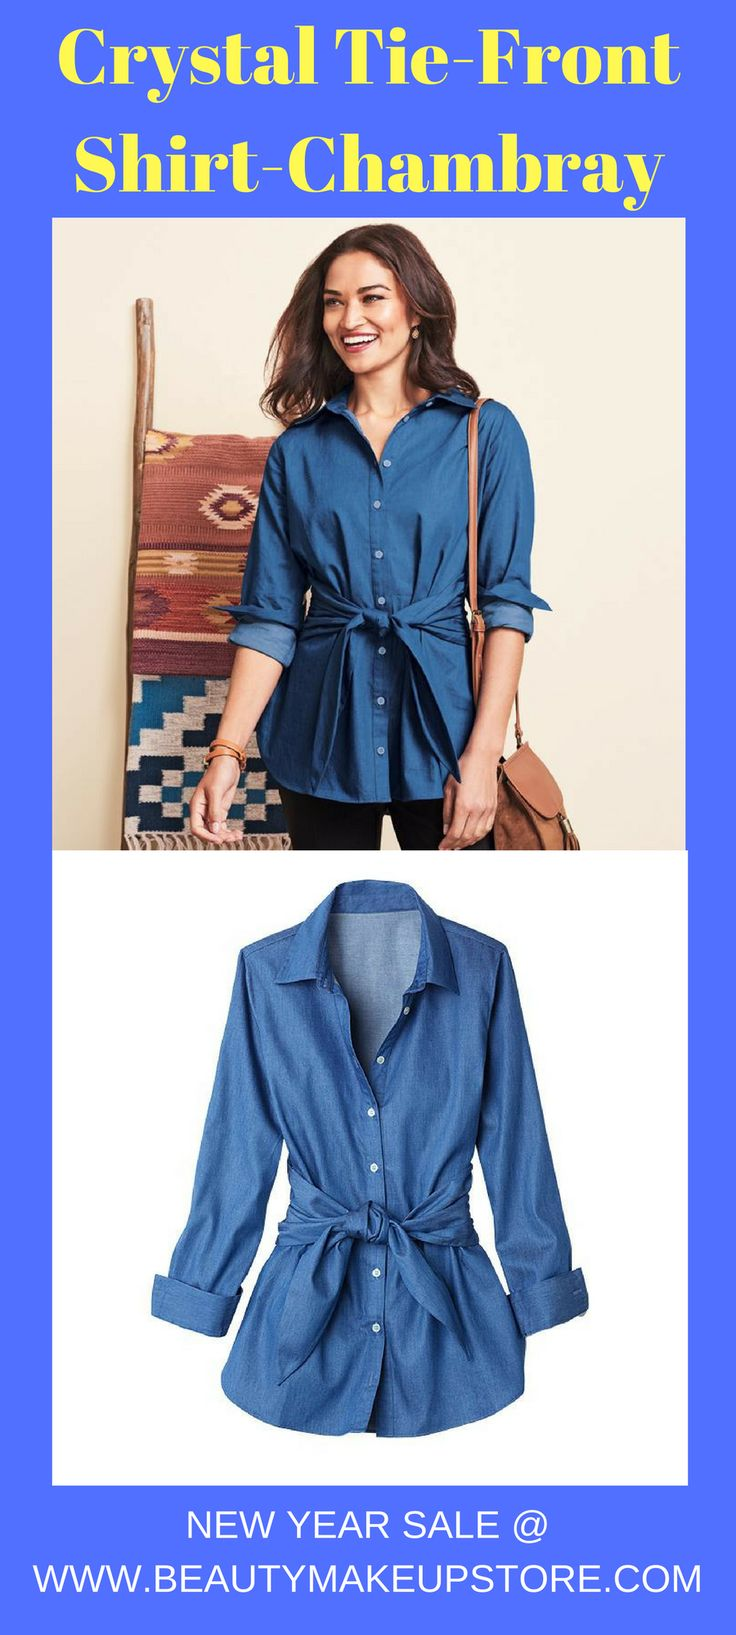 Crystal Tie-Front Shirt-Chambray #womenshirt #womenshirtfashion #womenclothing #womenclothingonsale #womenshirtforsale women shirt | women shirt fashion | women shirt design | women shirt blouse | women shirts with sayings | Women Shirts | Paula S. Lee | Women Shirt | Women Shirts | women shirt flannels |